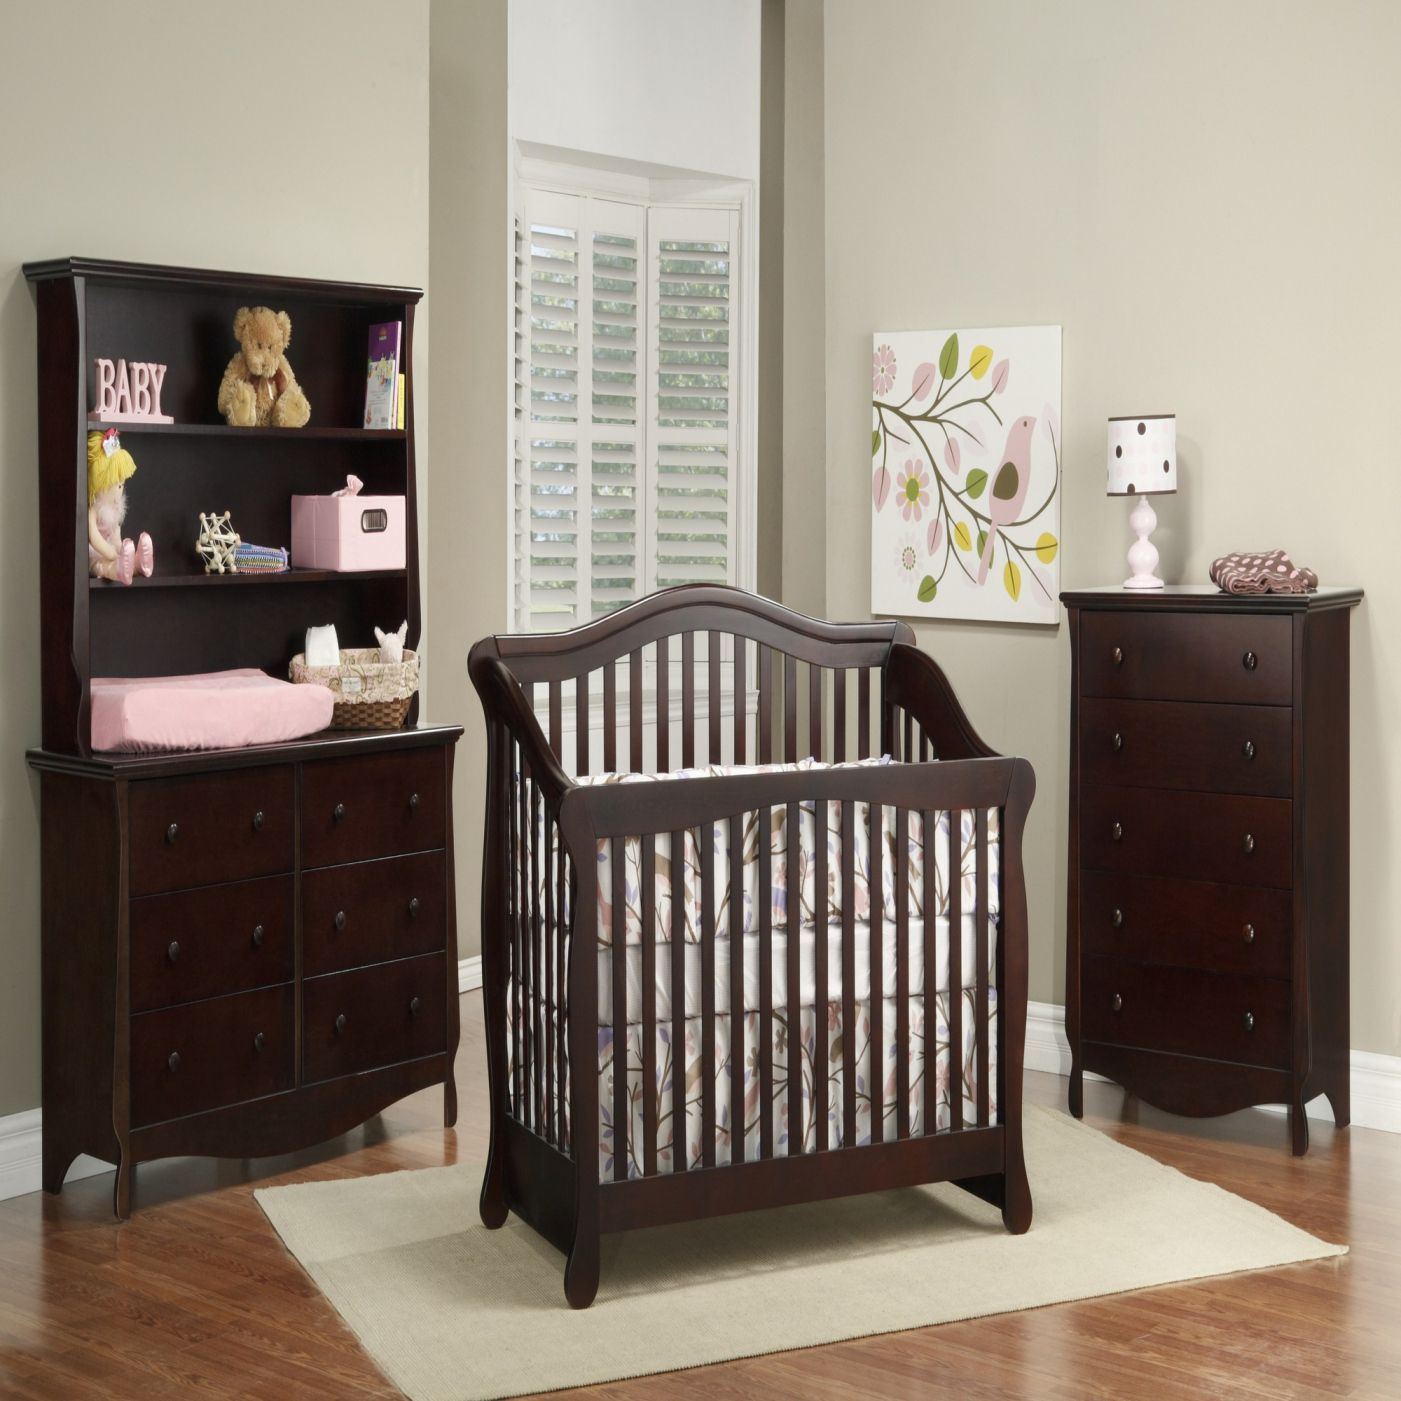 30 Mother Hubbard Baby Furniture Interior Designs For Bedrooms Check More At Http